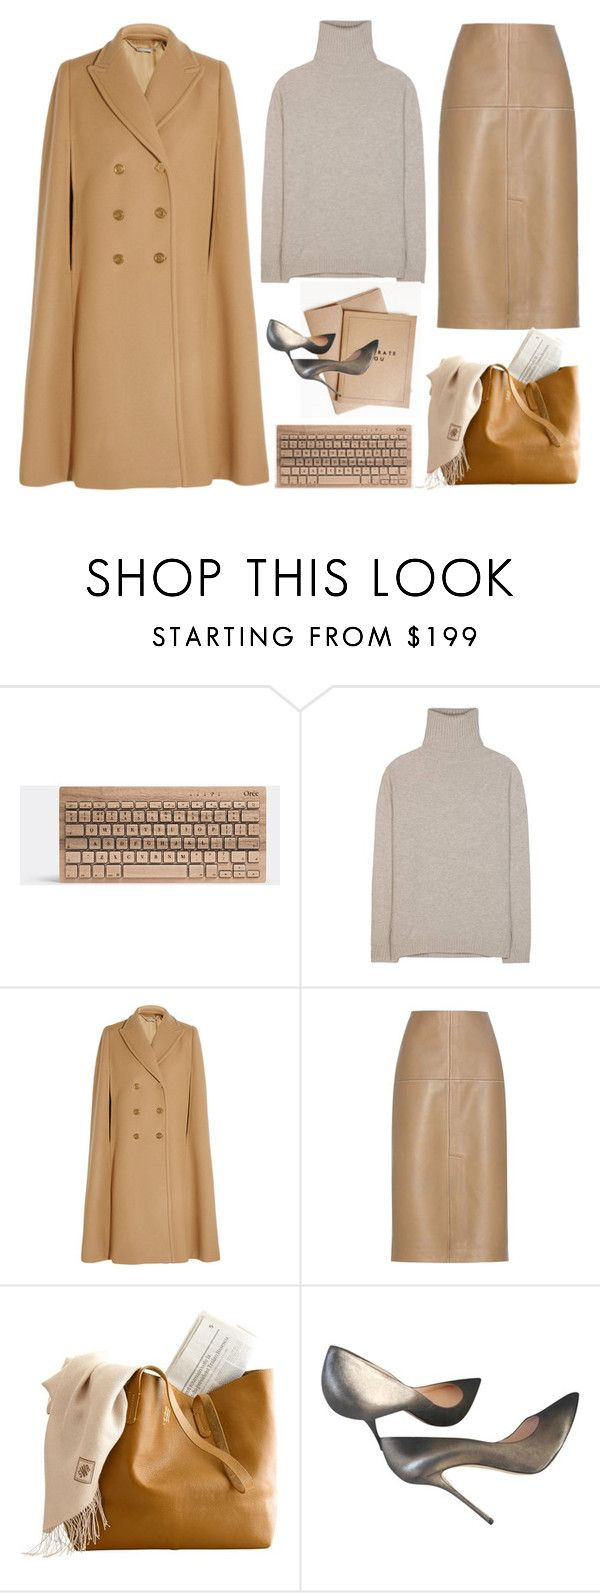 """Cool Neutrals"" by mcheffer on Polyvore featuring Jardin des Orangers, Alexander McQueen, By Malene Birger, Casadei and neutrals"